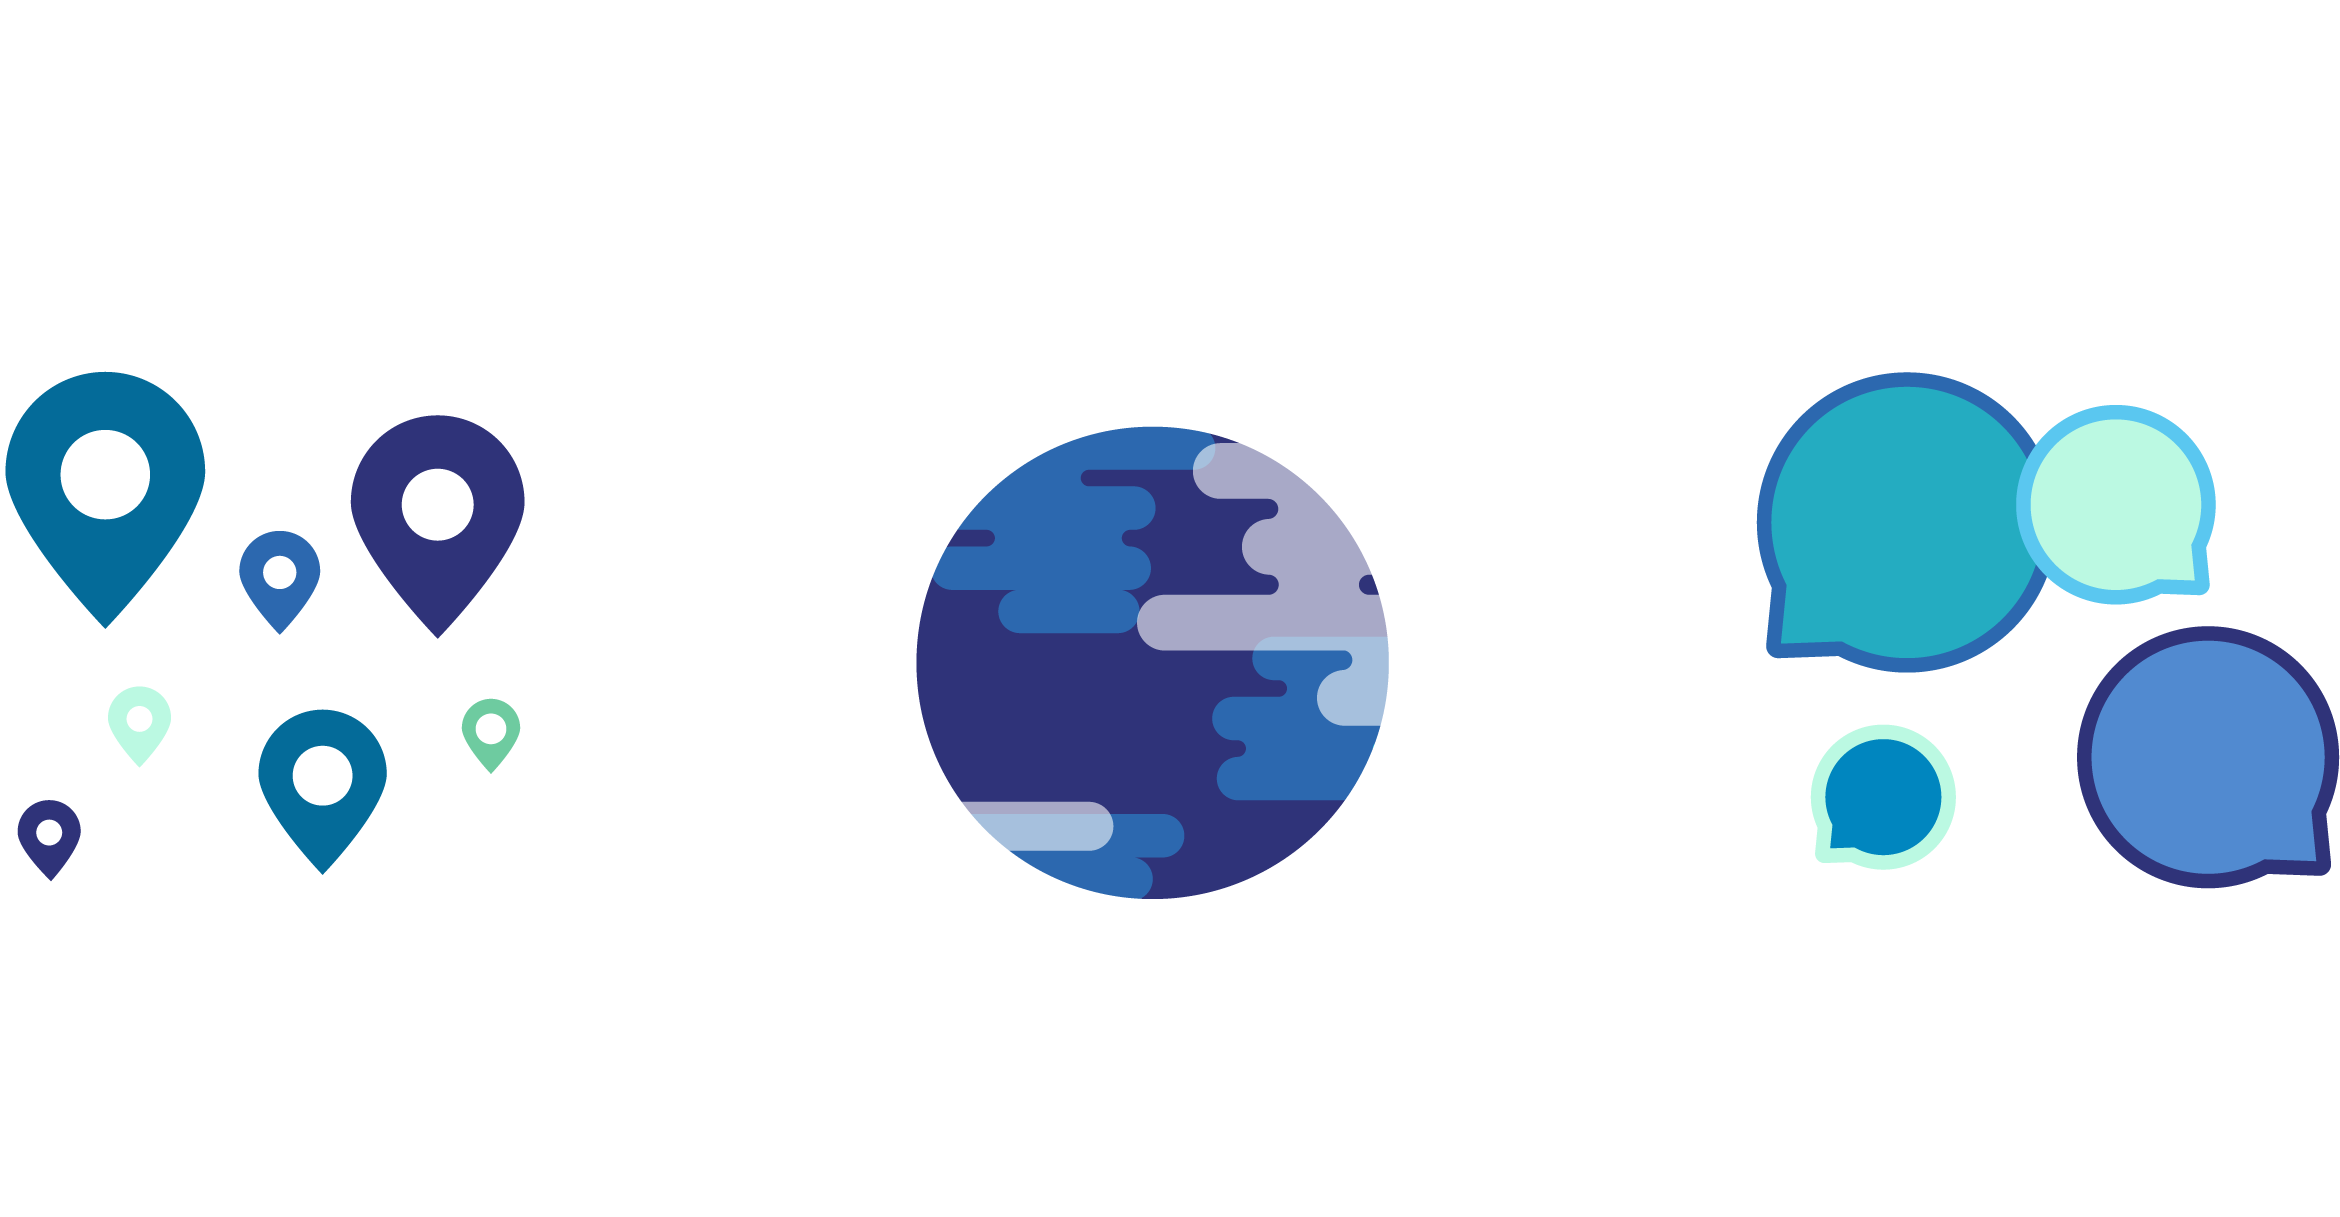 Diverse@2x.png